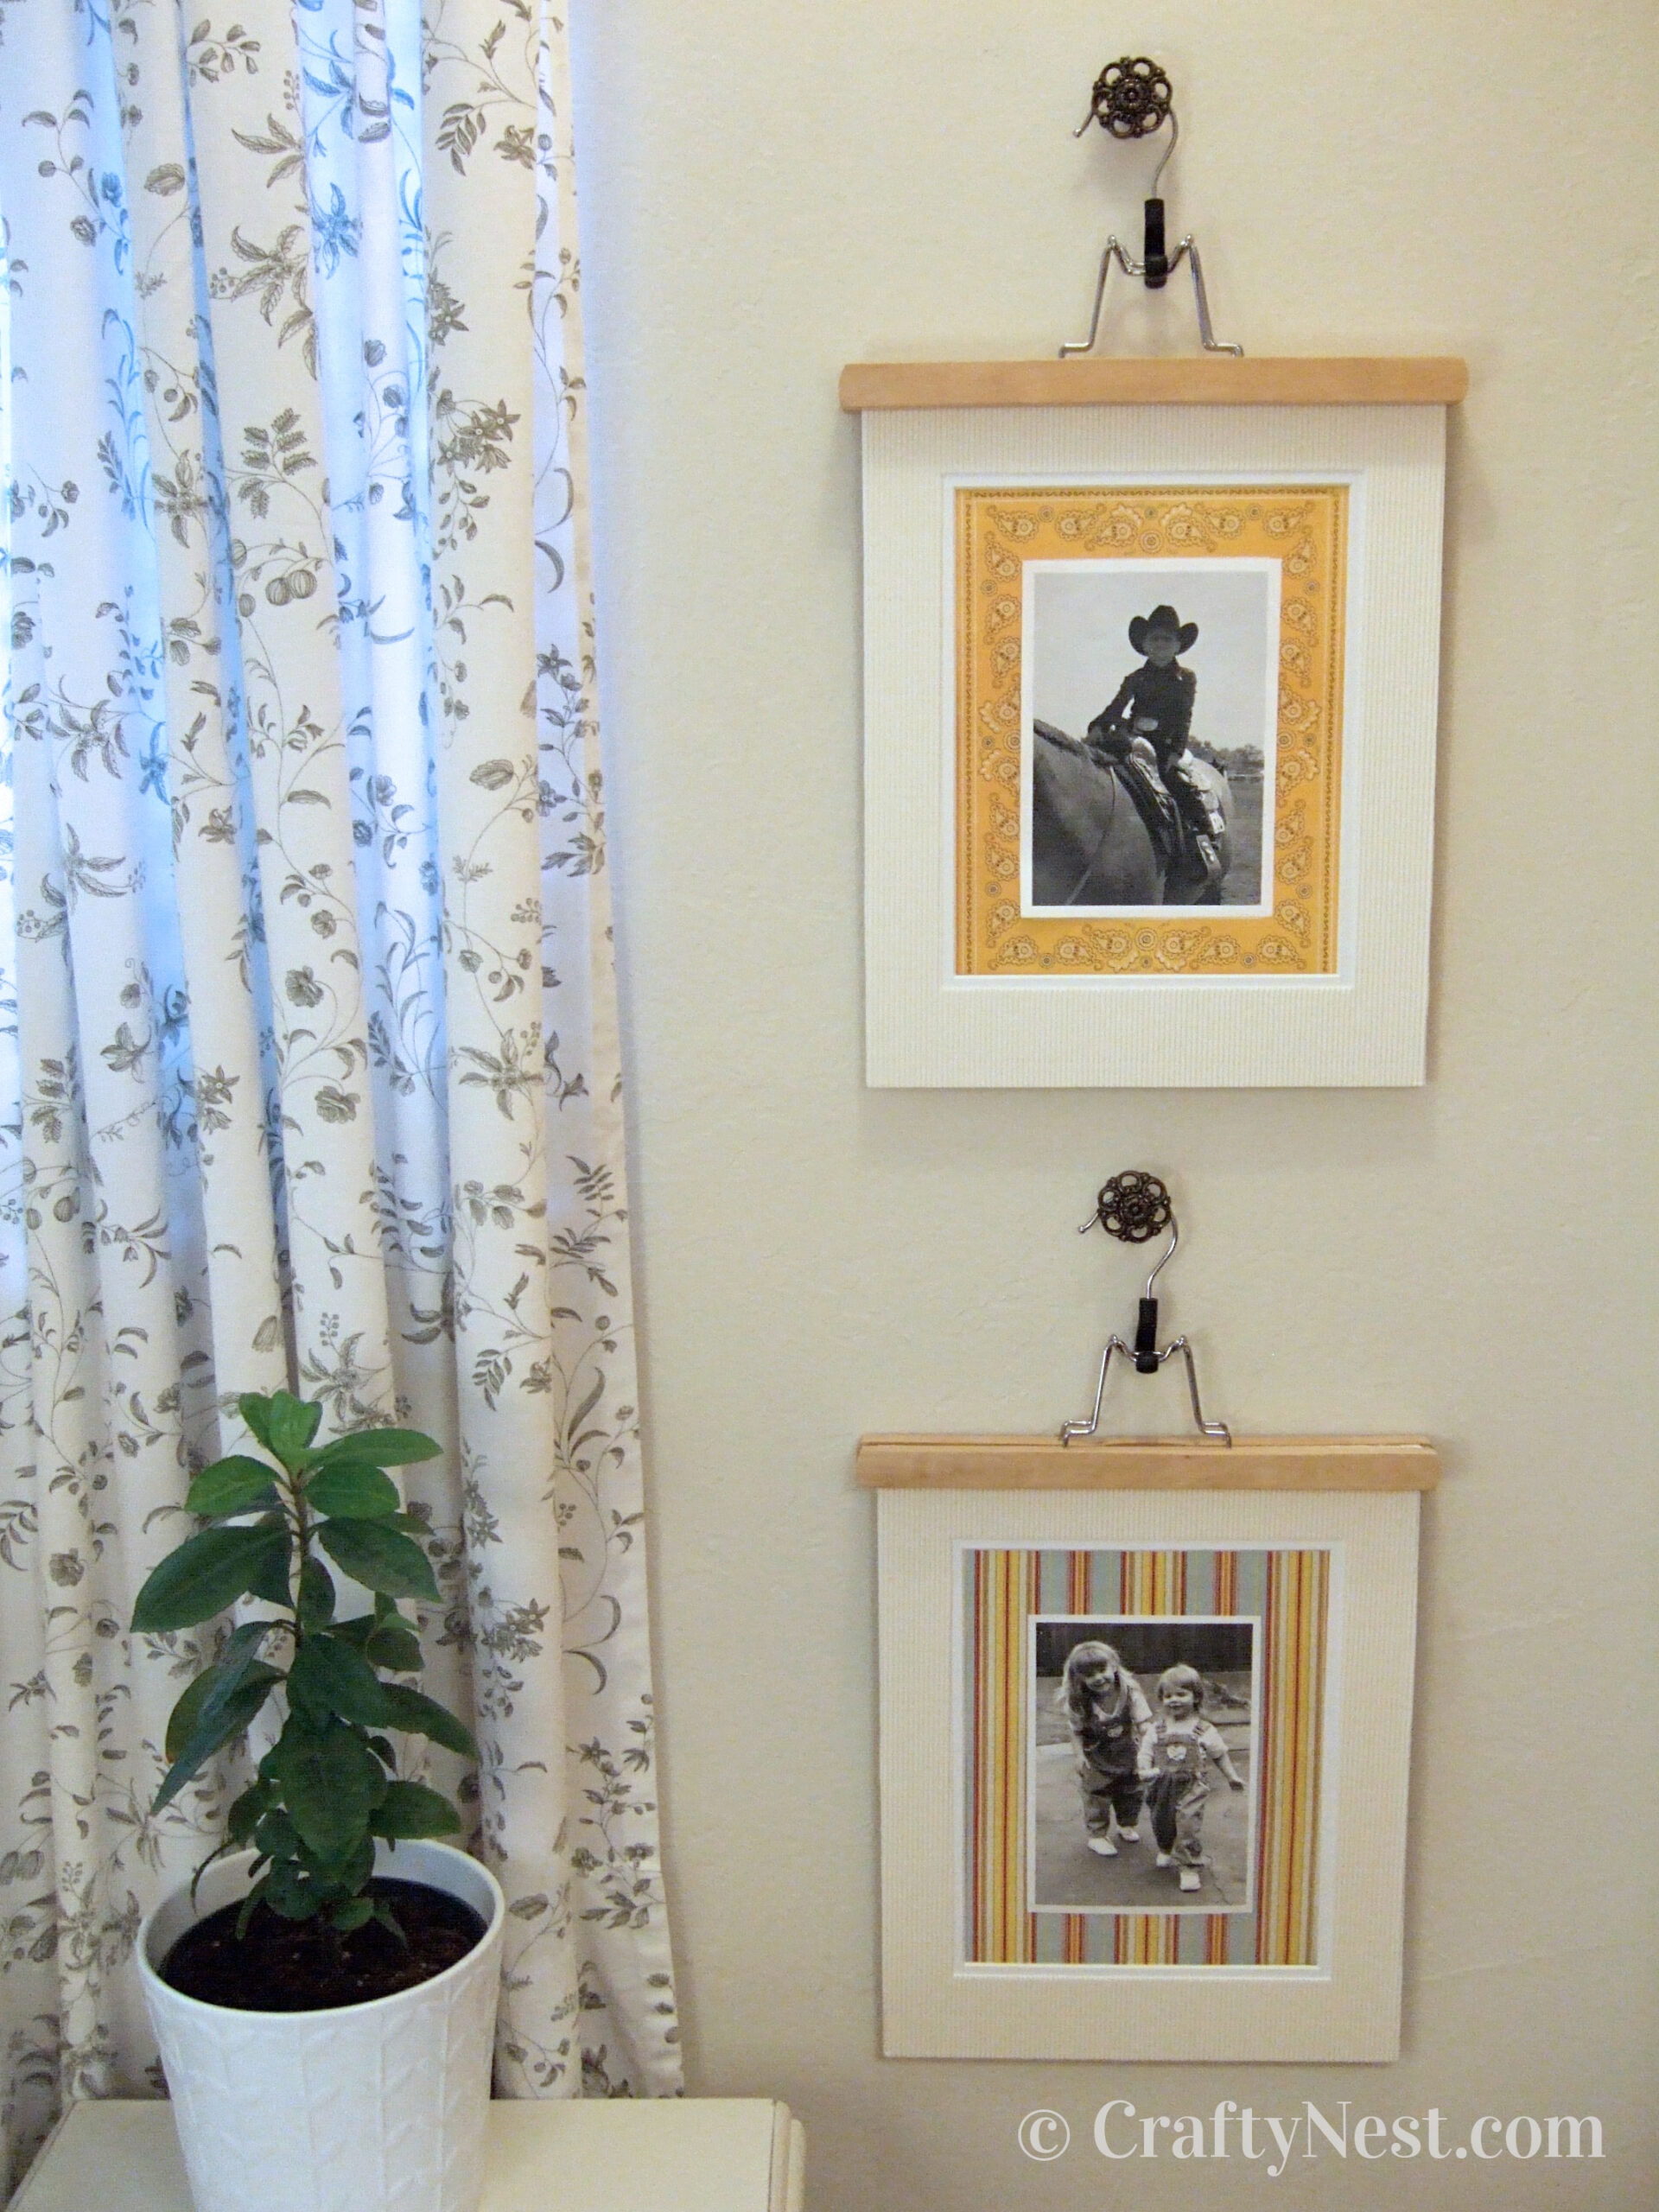 Pictures hanging from pants hangers and drawer pulls, photo